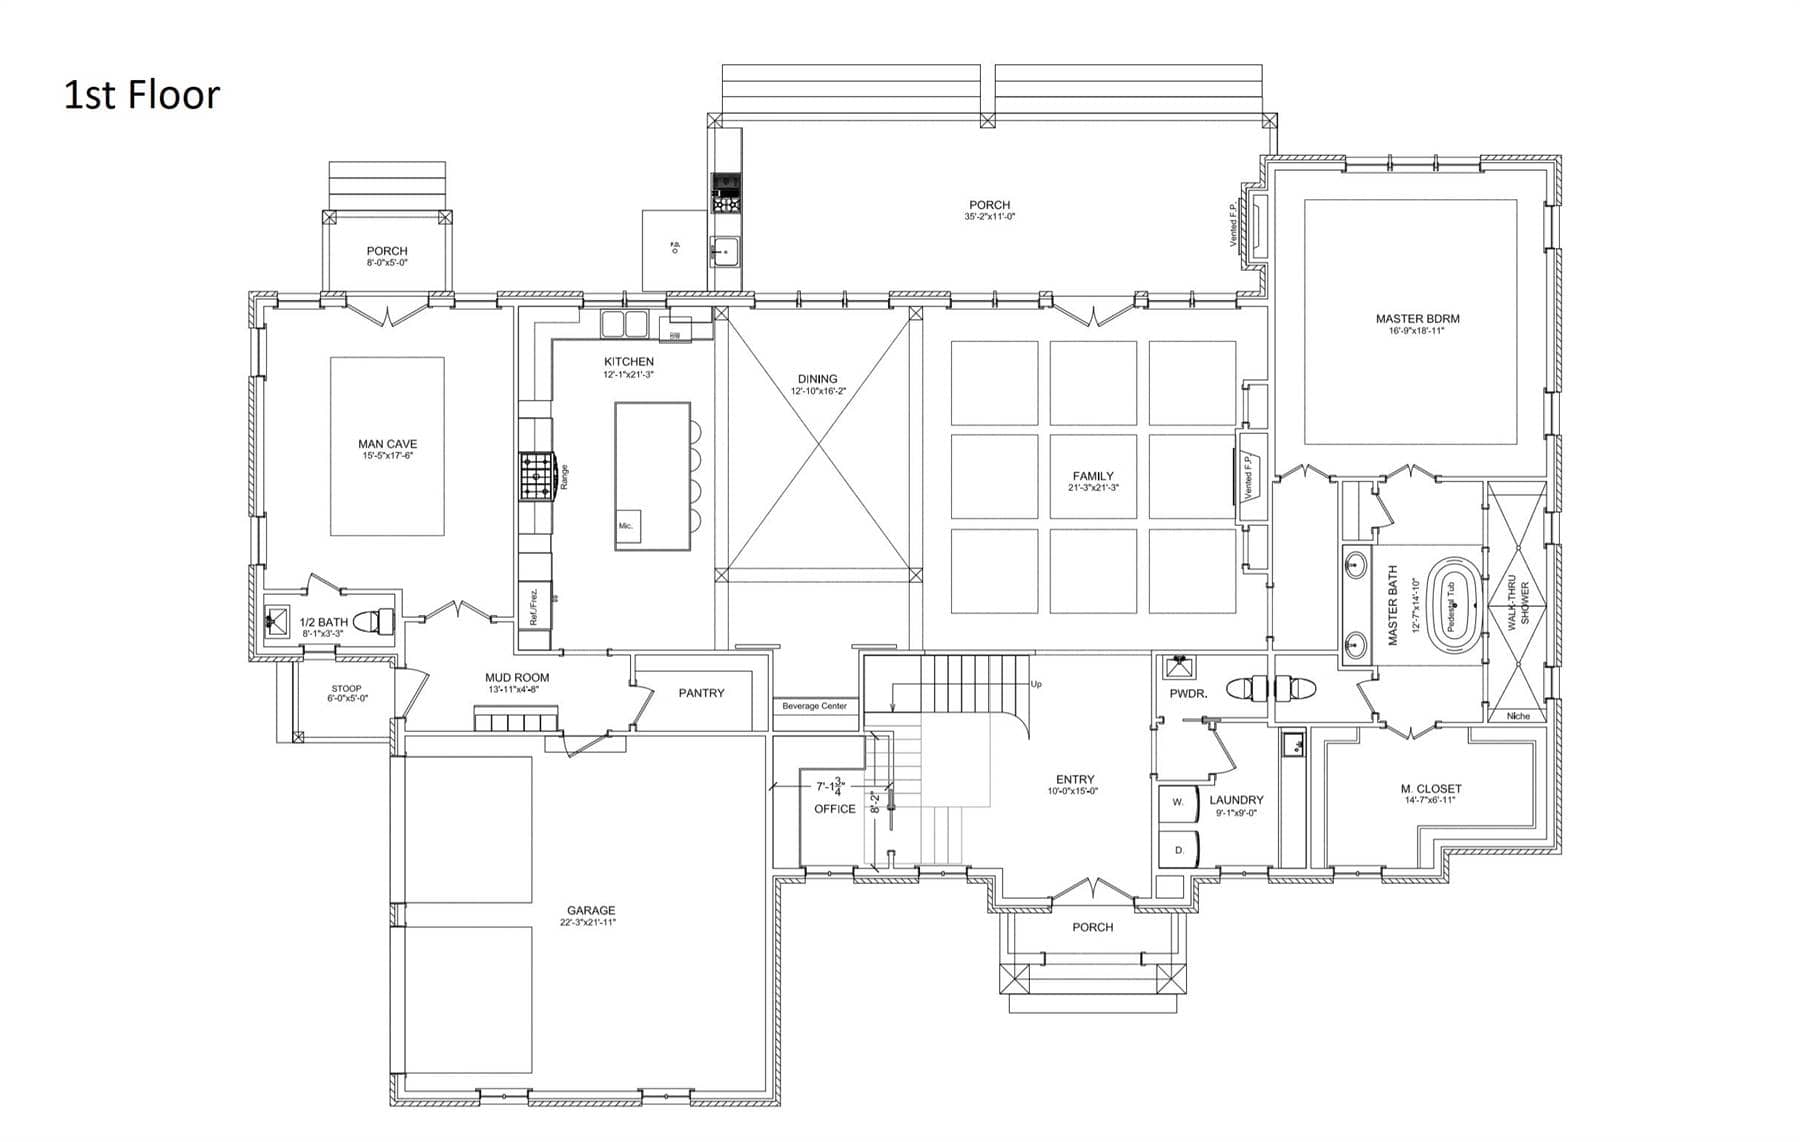 Main level floor plan of a 4-bedroom two-story Baton Rouge traditional luxury style home with front and back porches, office, laundry room, family room, dining room, kitchen, primary bedroom, and a mancave with a private porch.